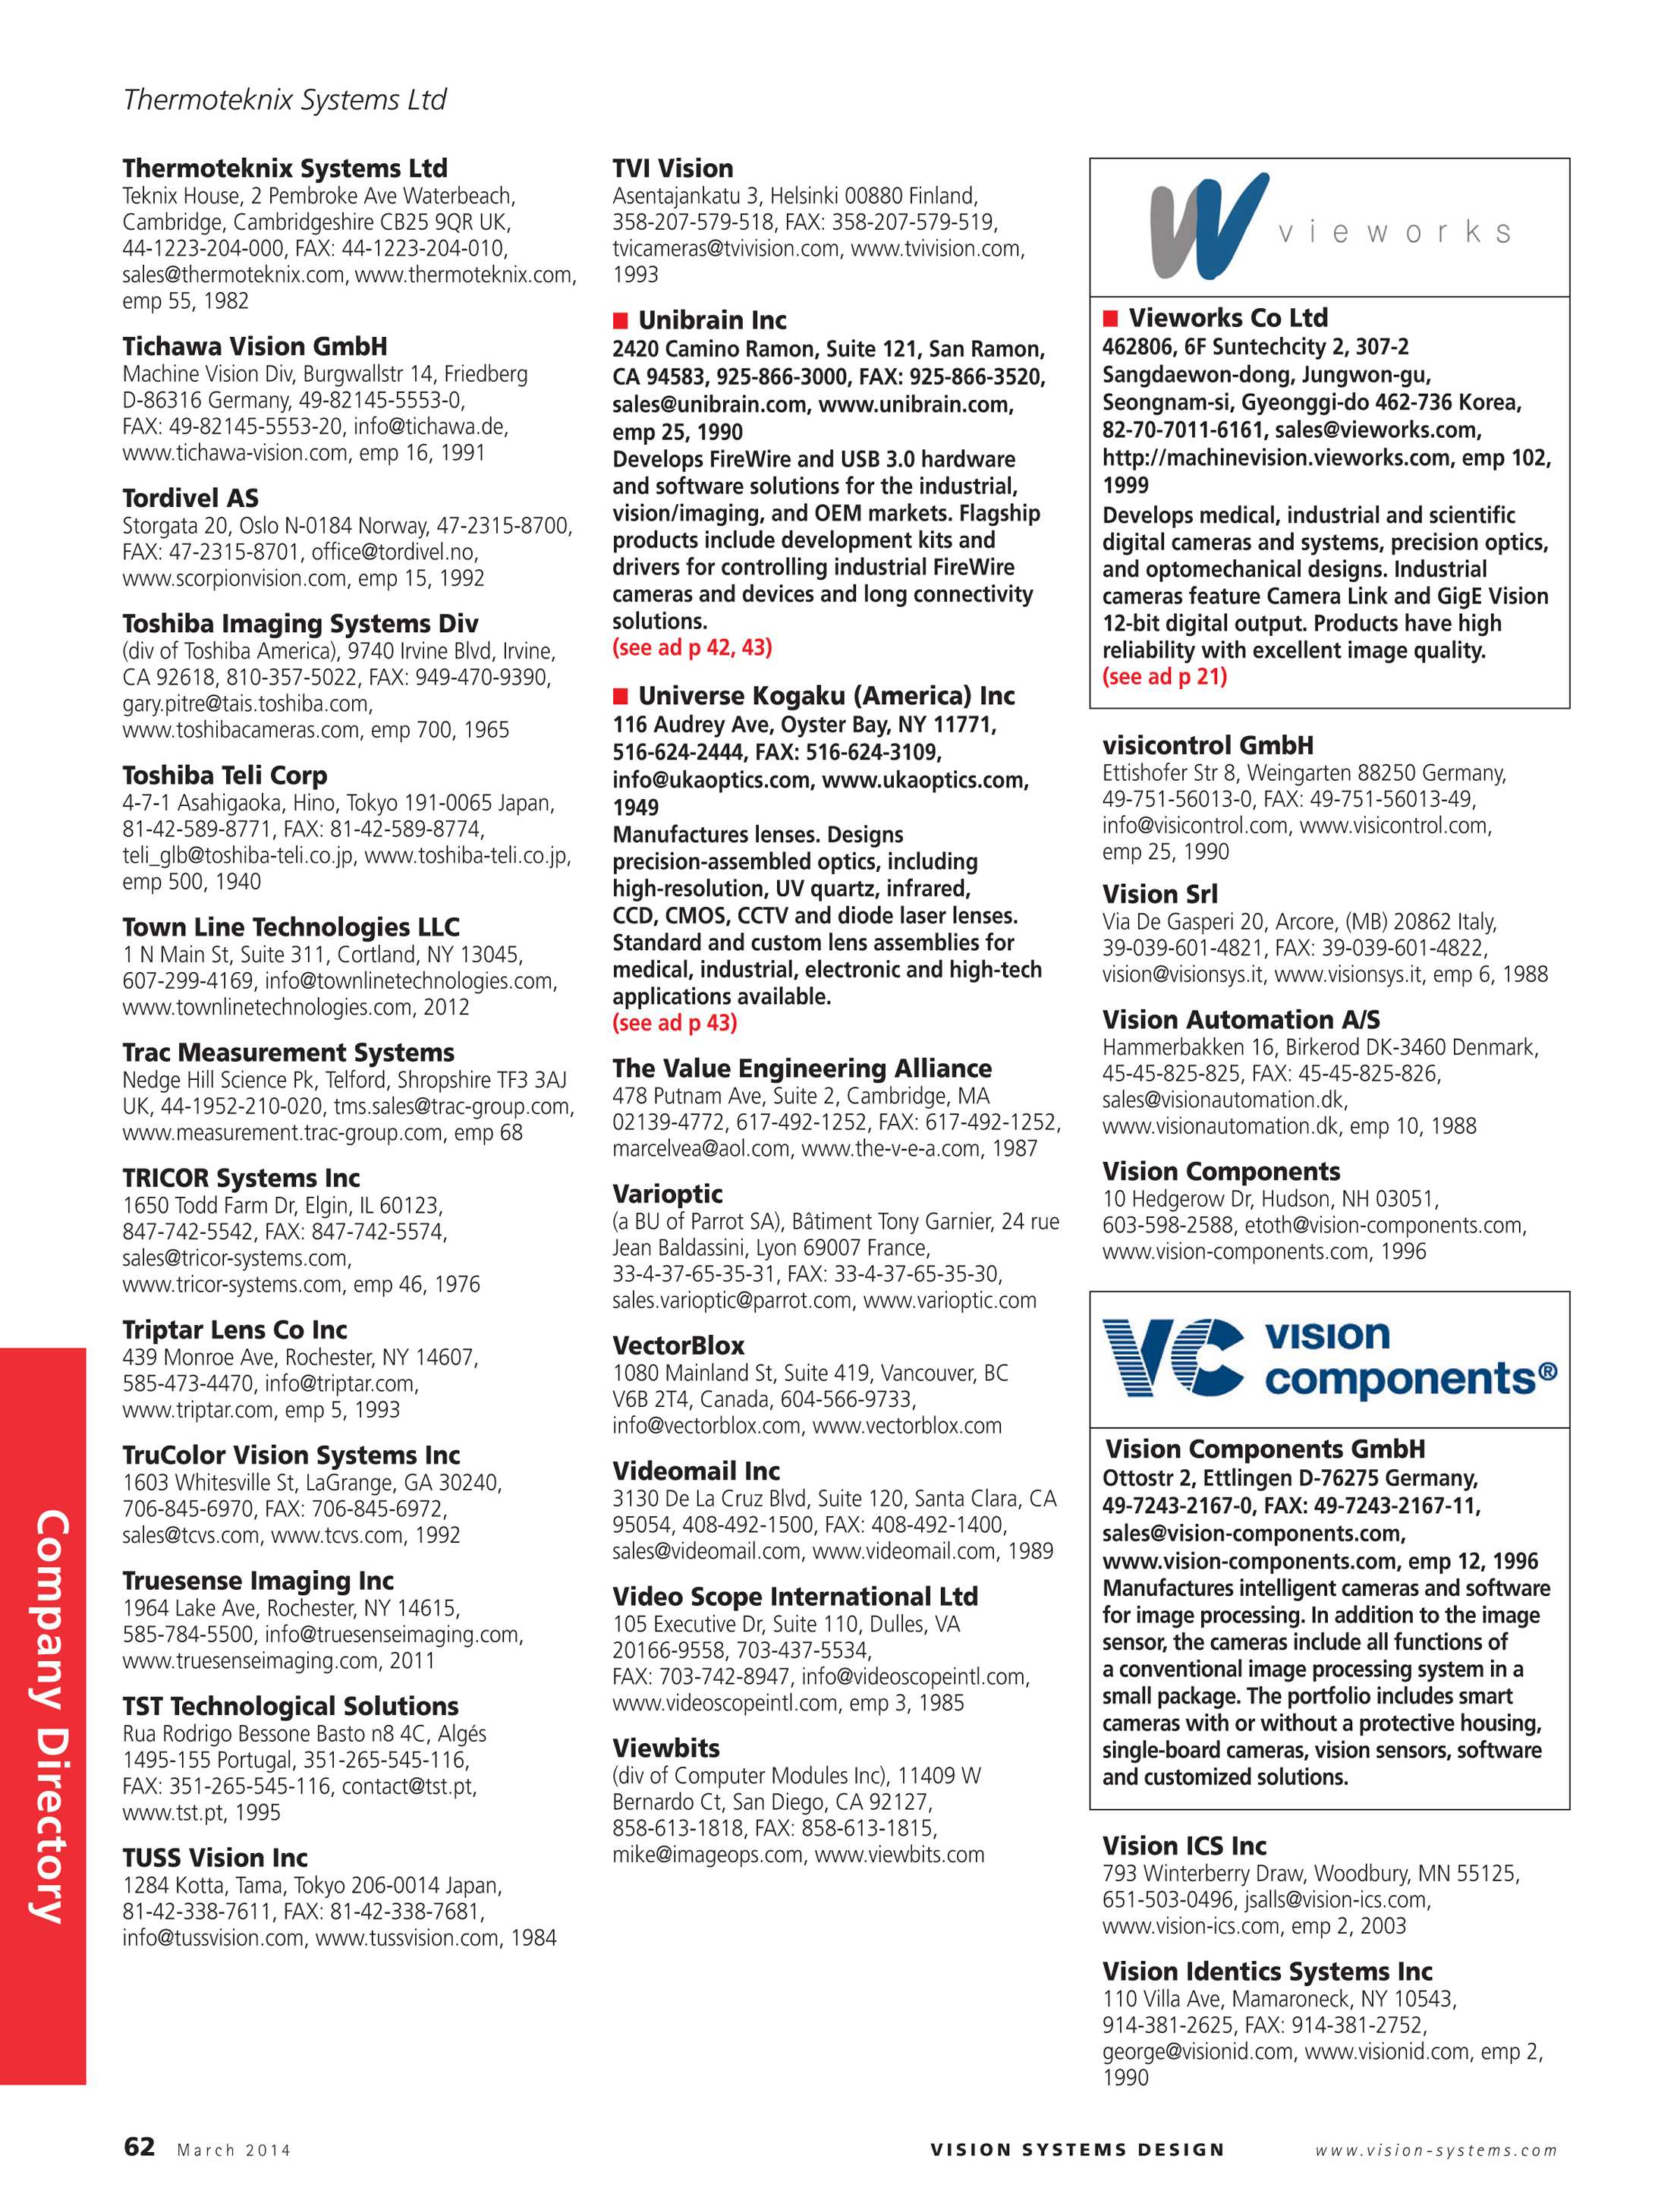 Vision Systems - March 2014 - page 62